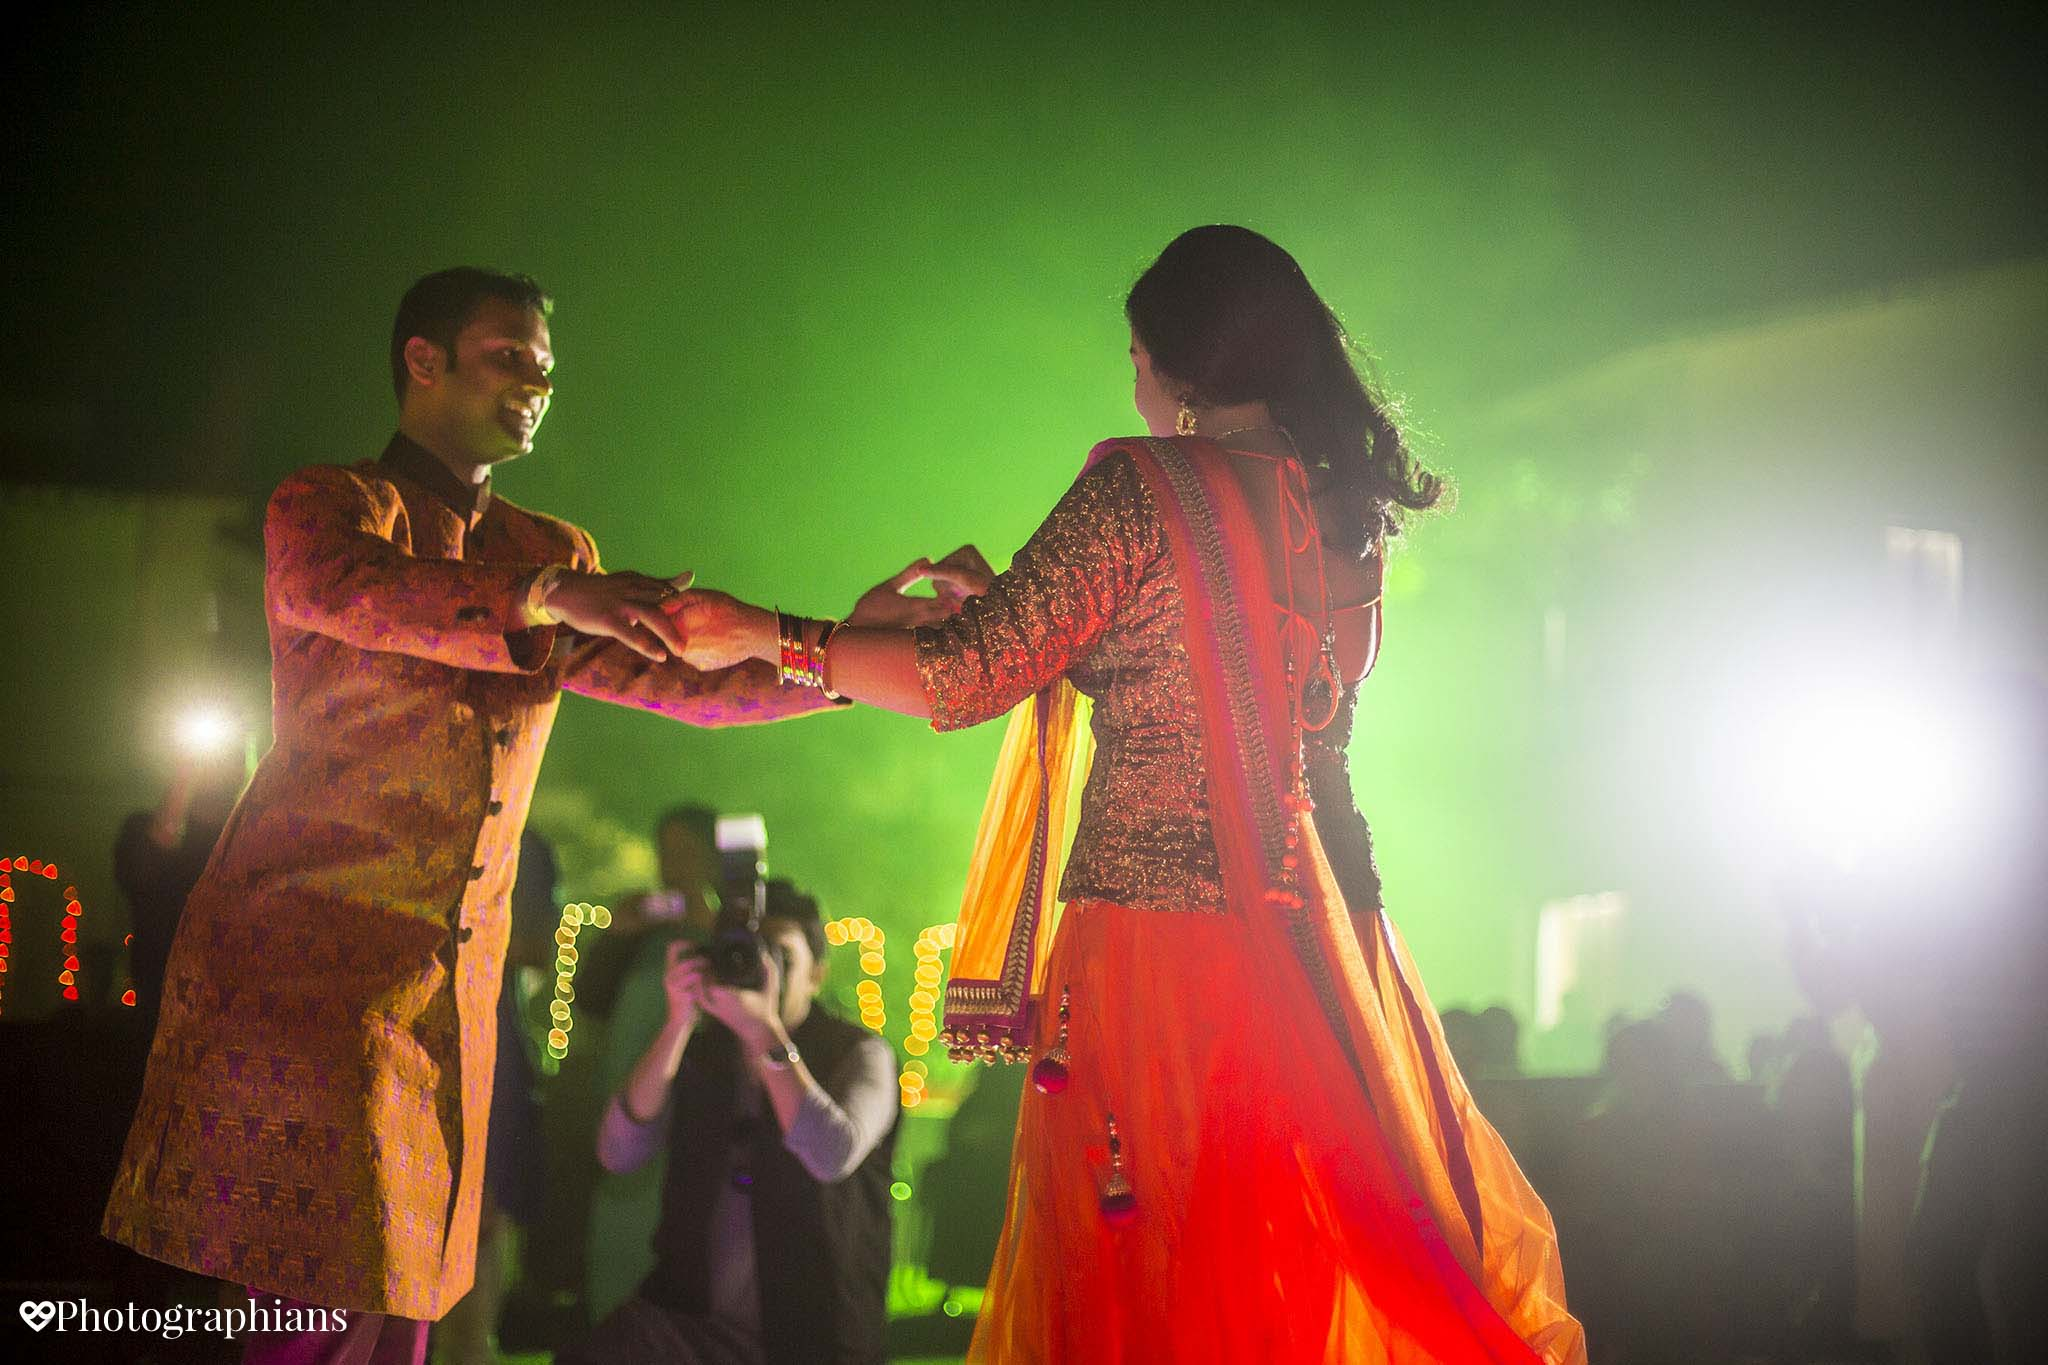 Photographians_Indian_Destination_Wedding_157